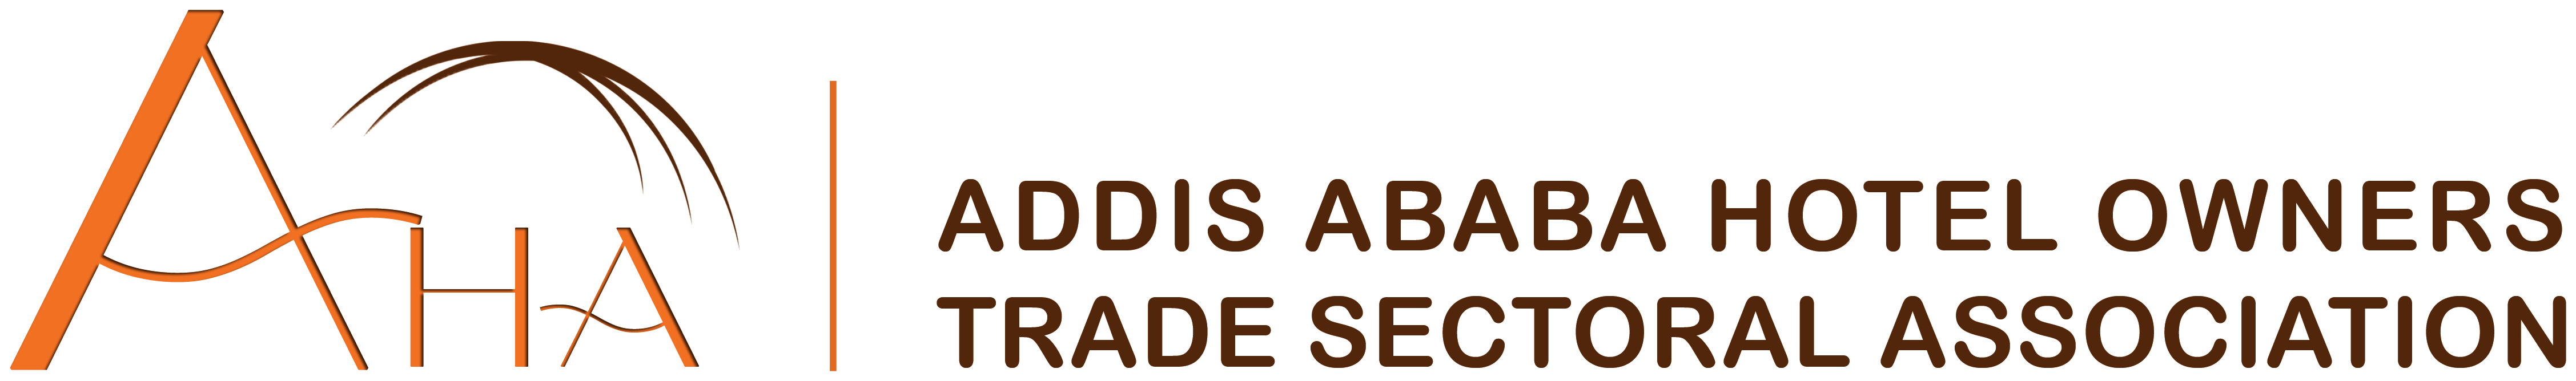 Addis Ababa Hotel Owners Trade Sectoral Association Logo